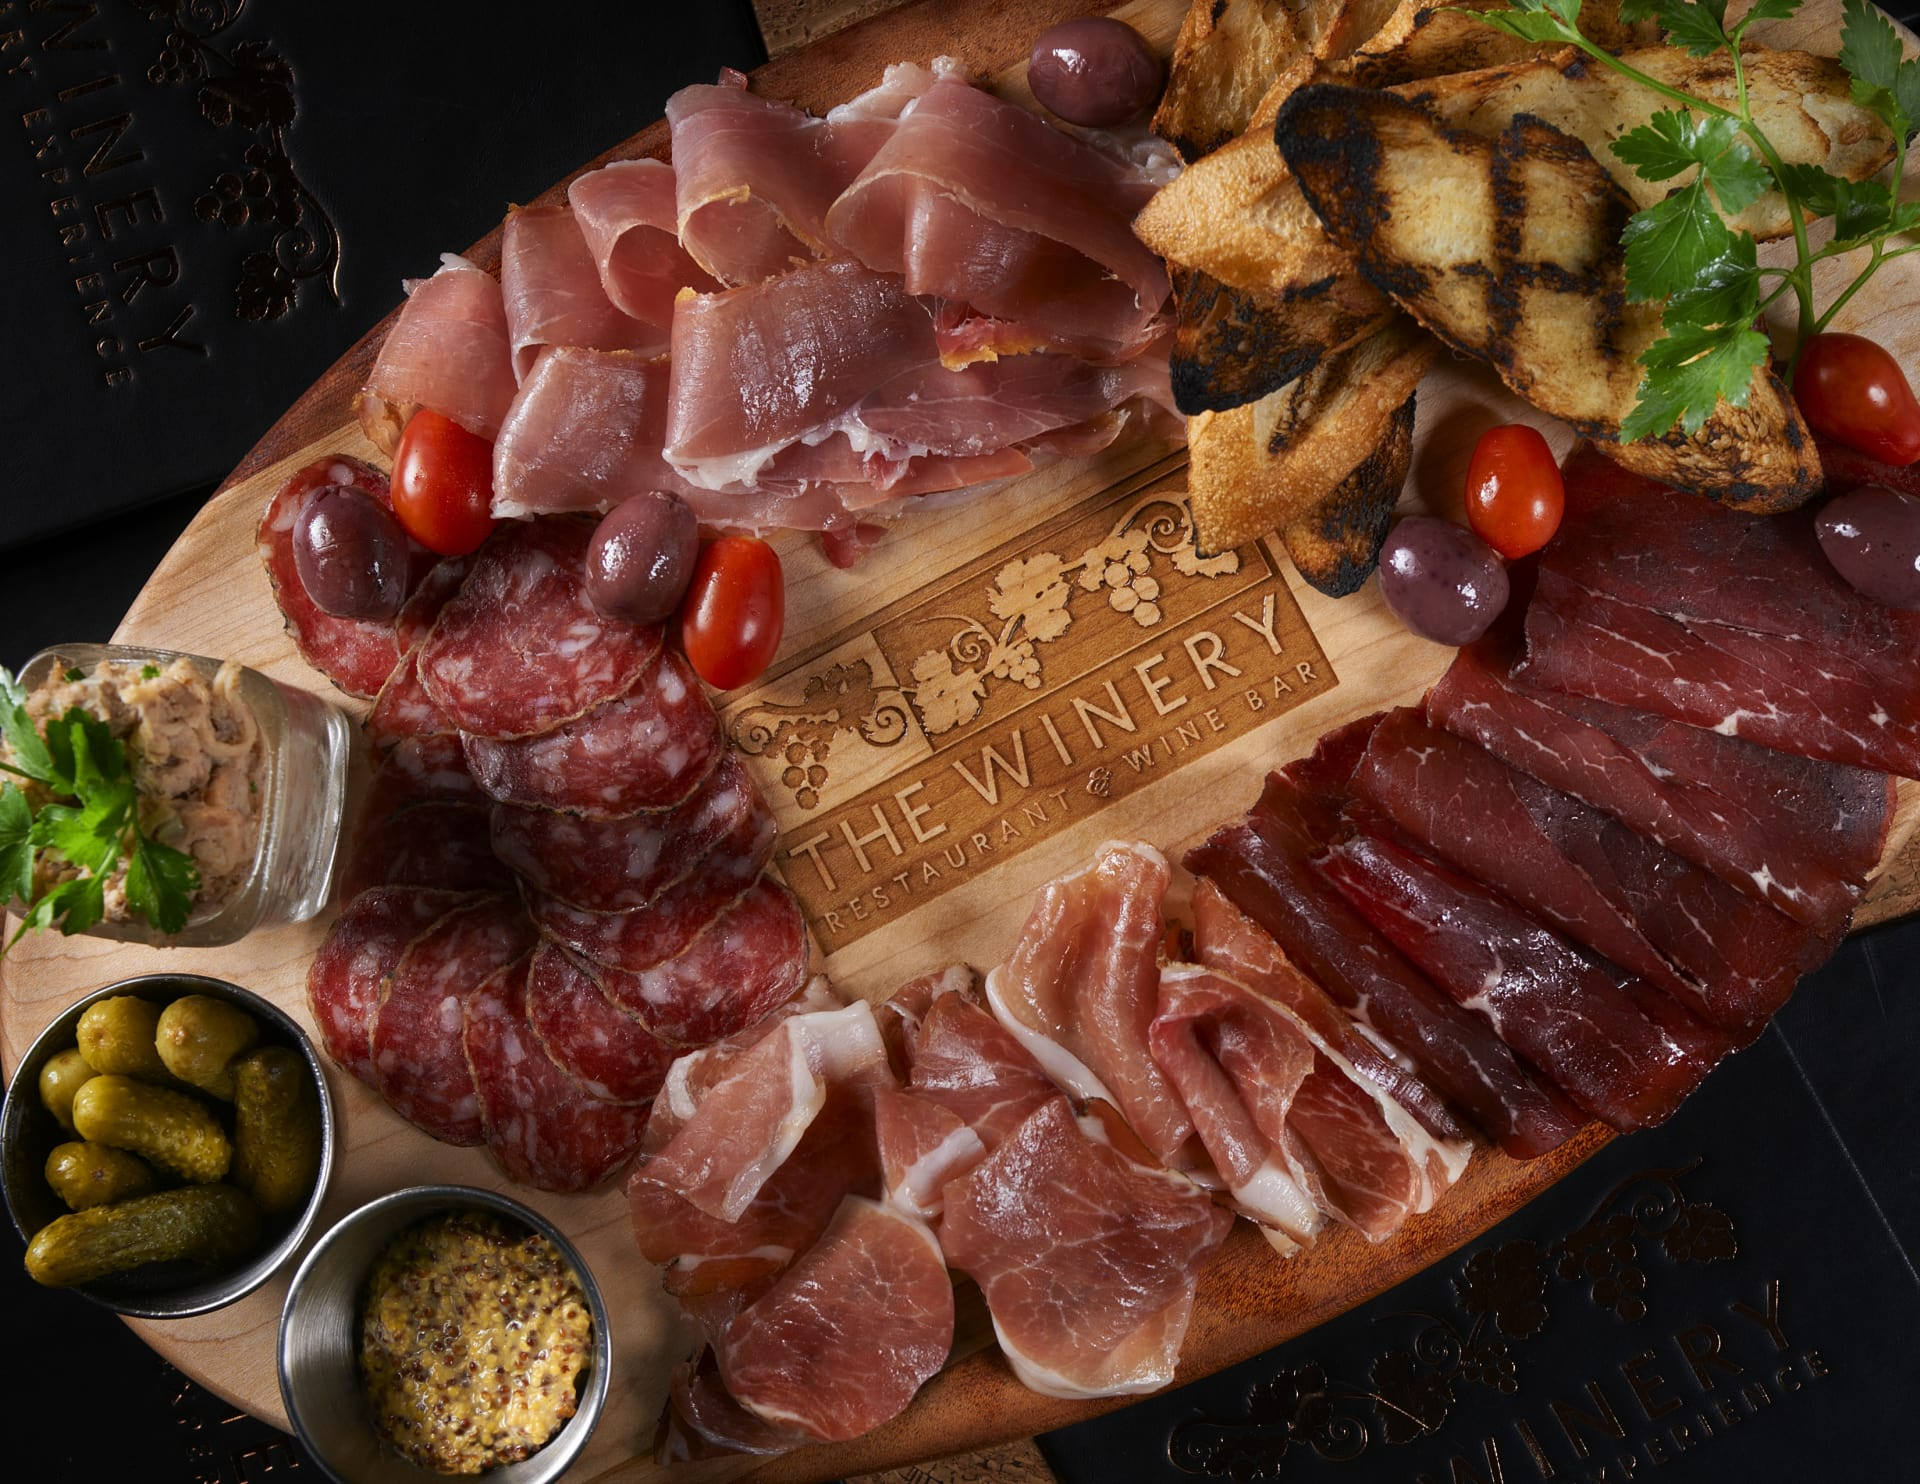 The Winery Charcuterie & Artisanal Cheese Board